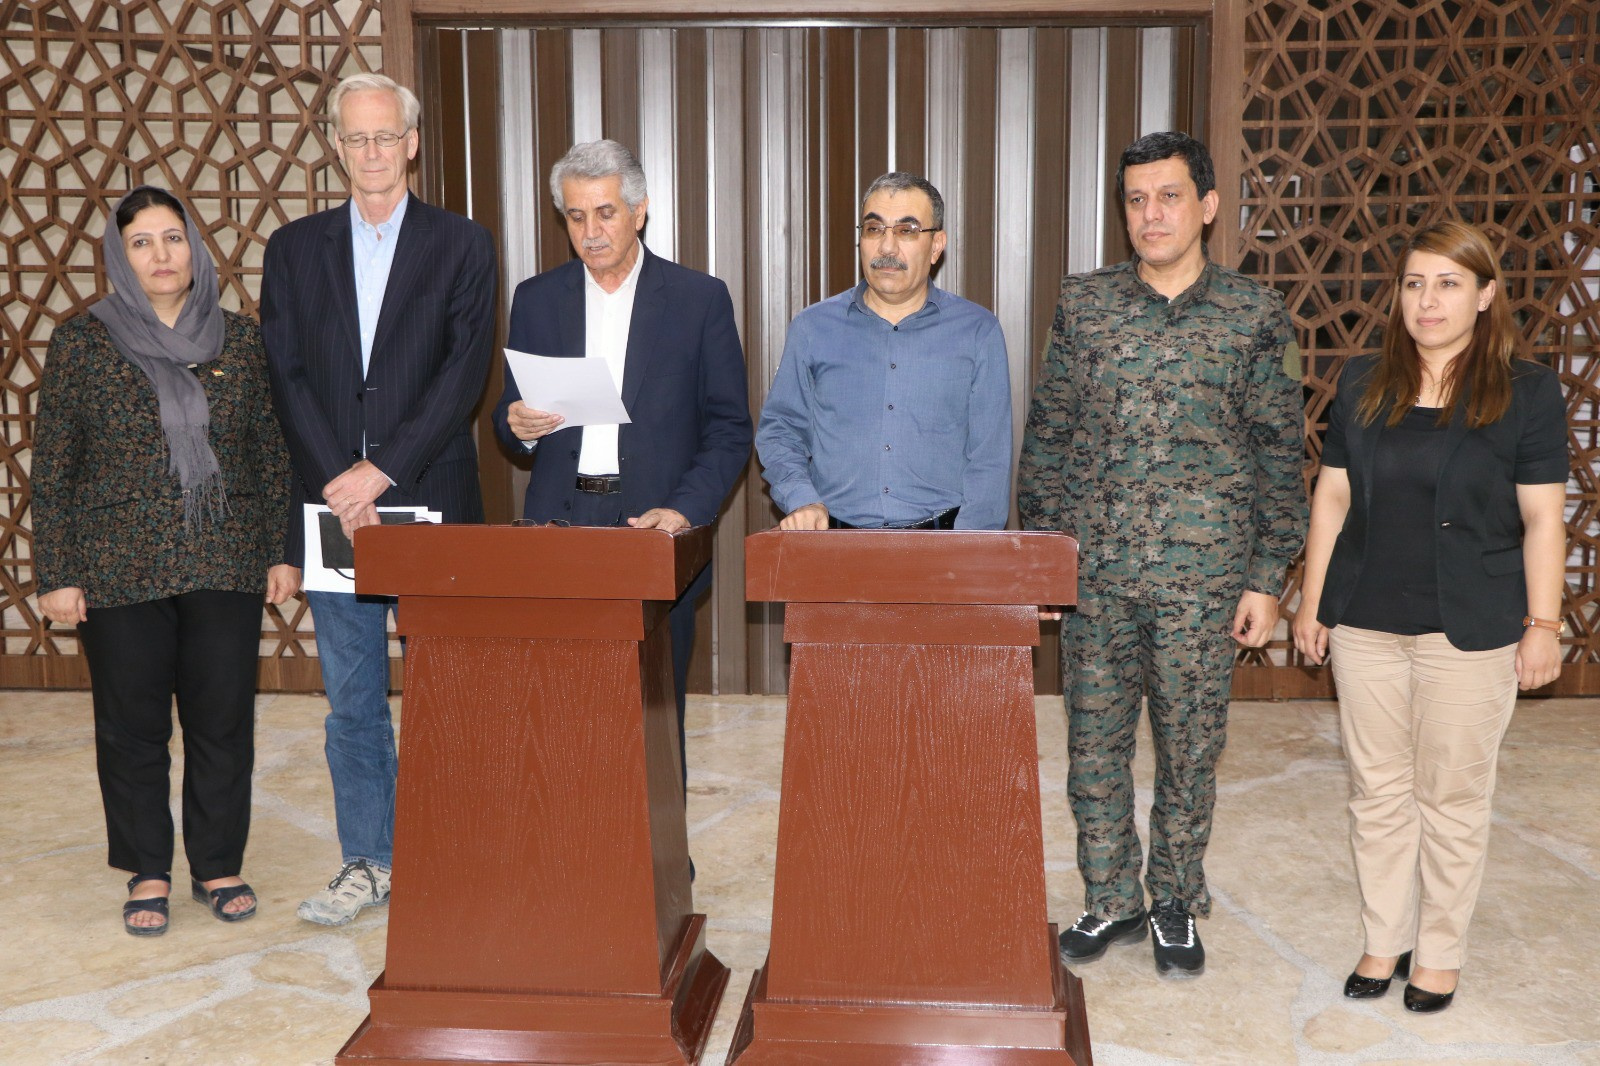 Statement of the initial agreement between the Kurdish National Council and the Kurdish national unity parties